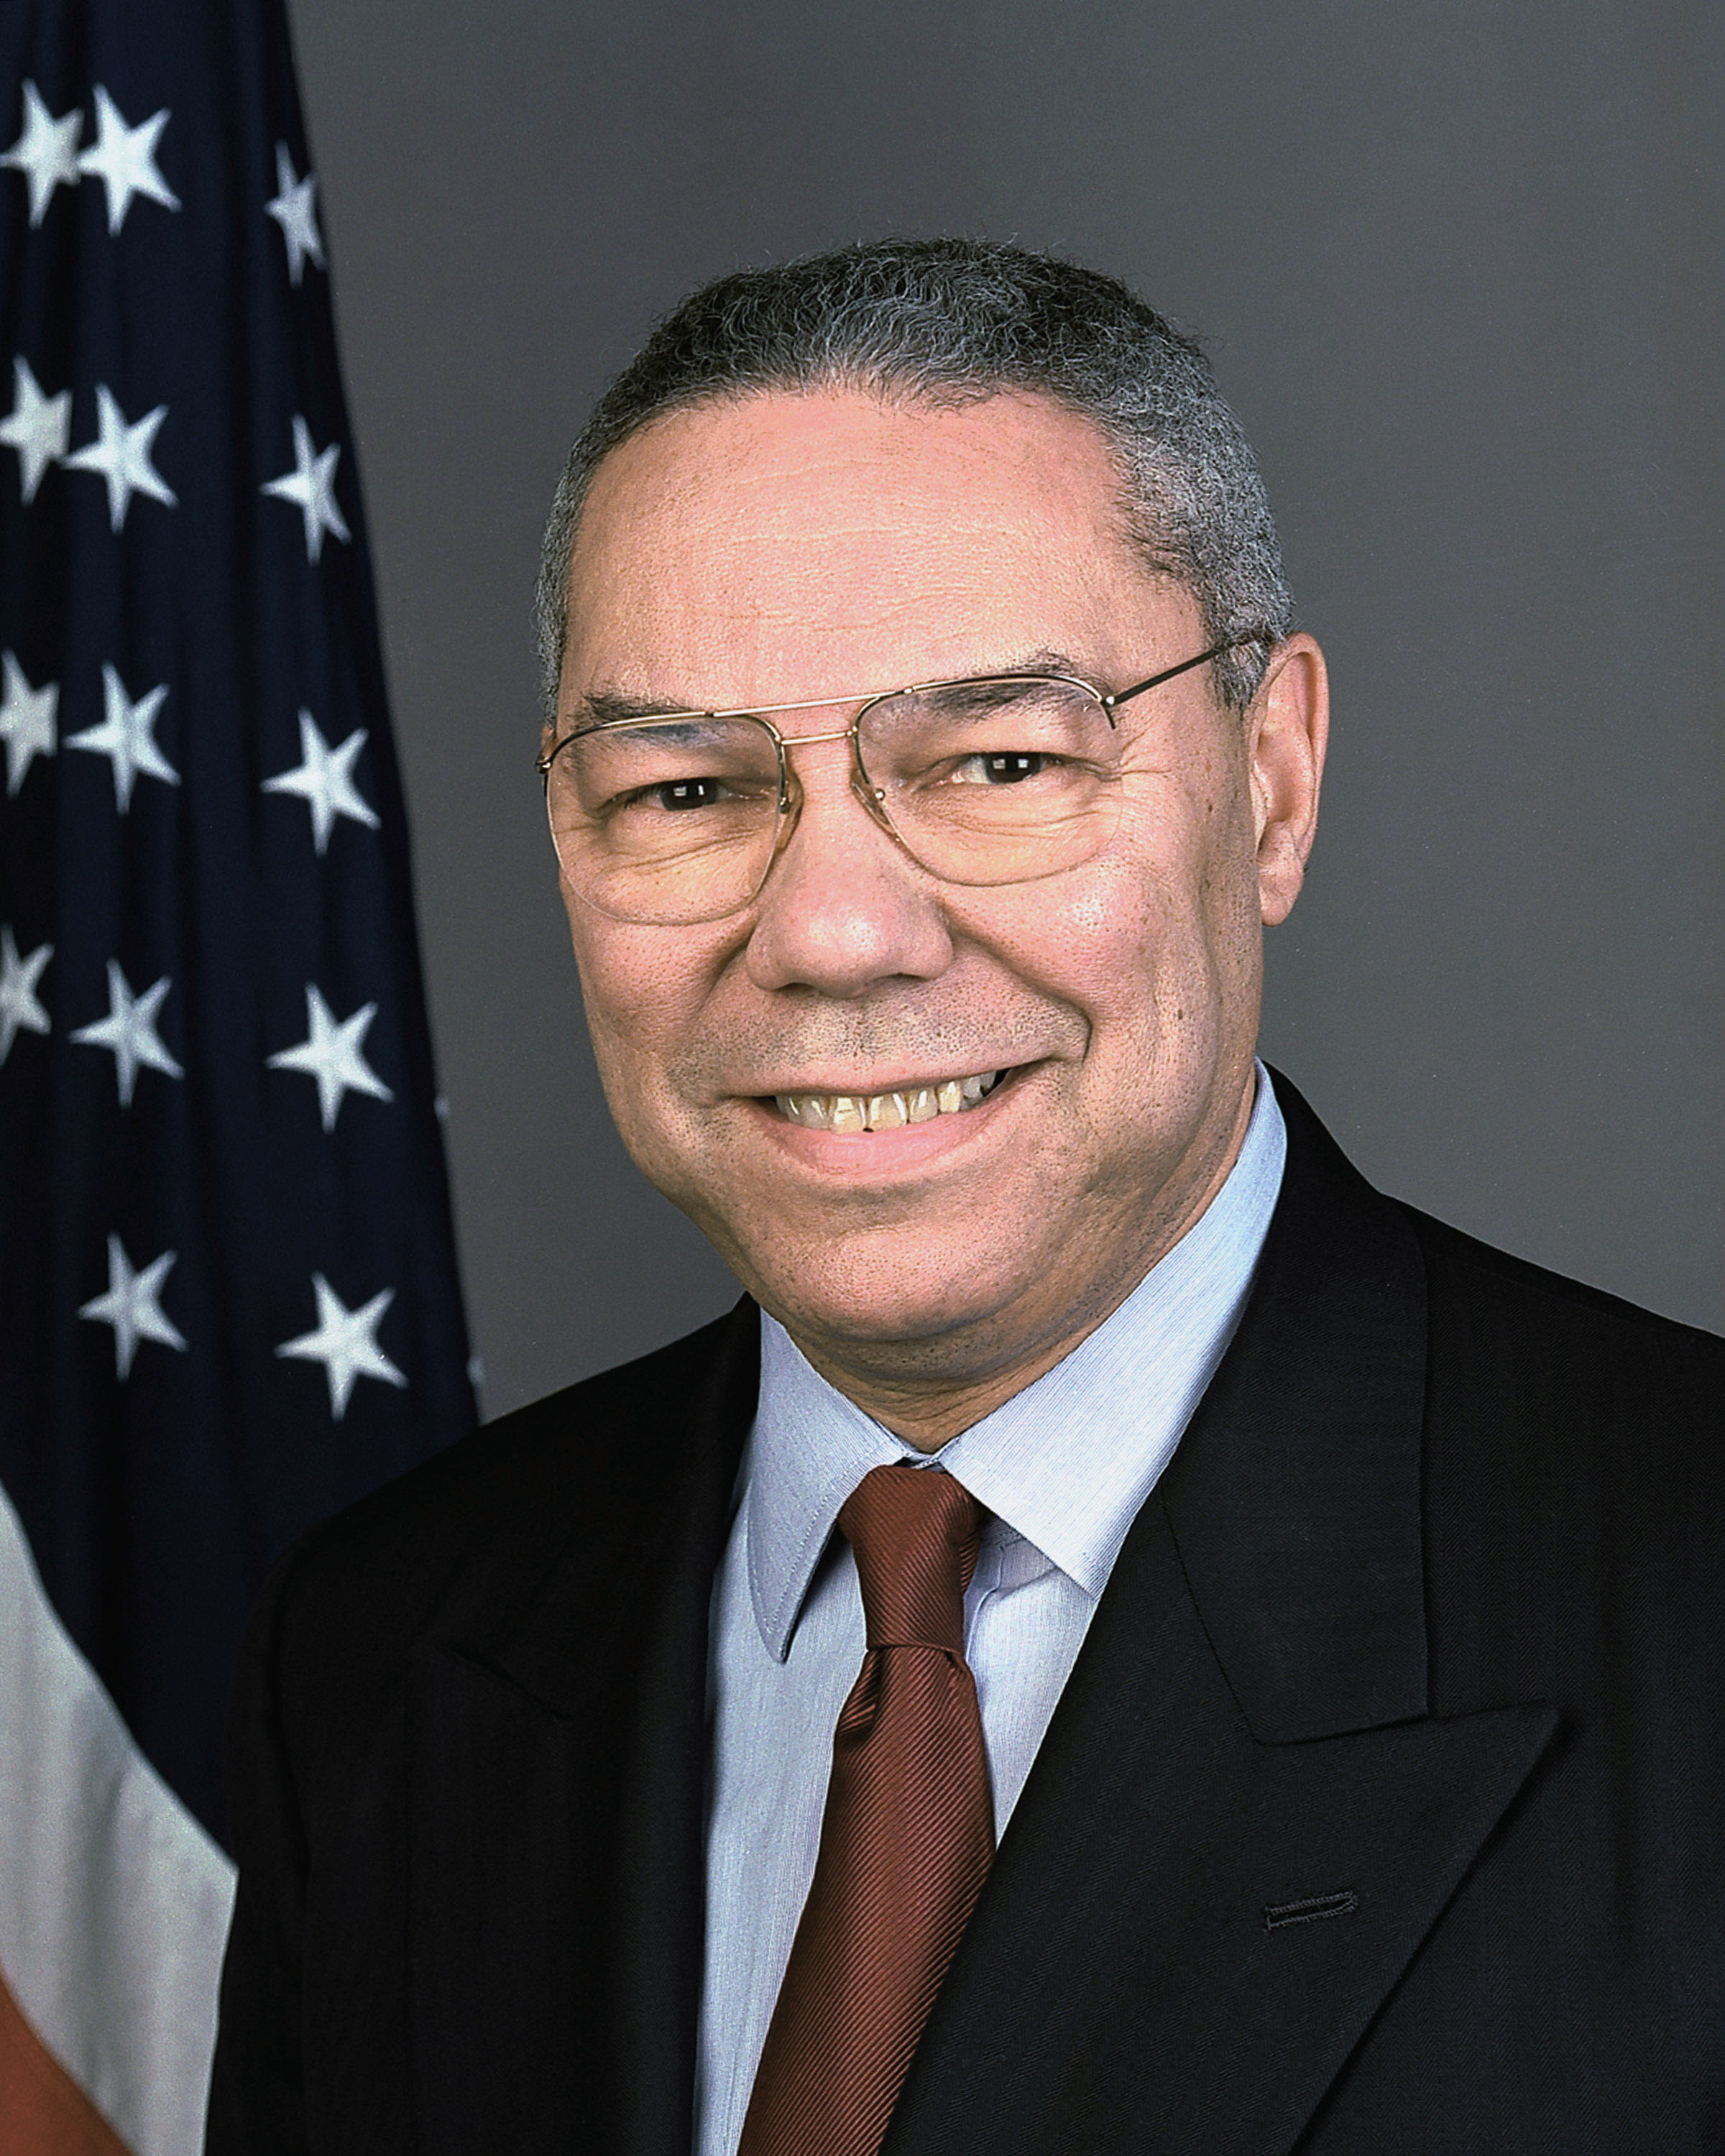 Colin Powell Wikipedia